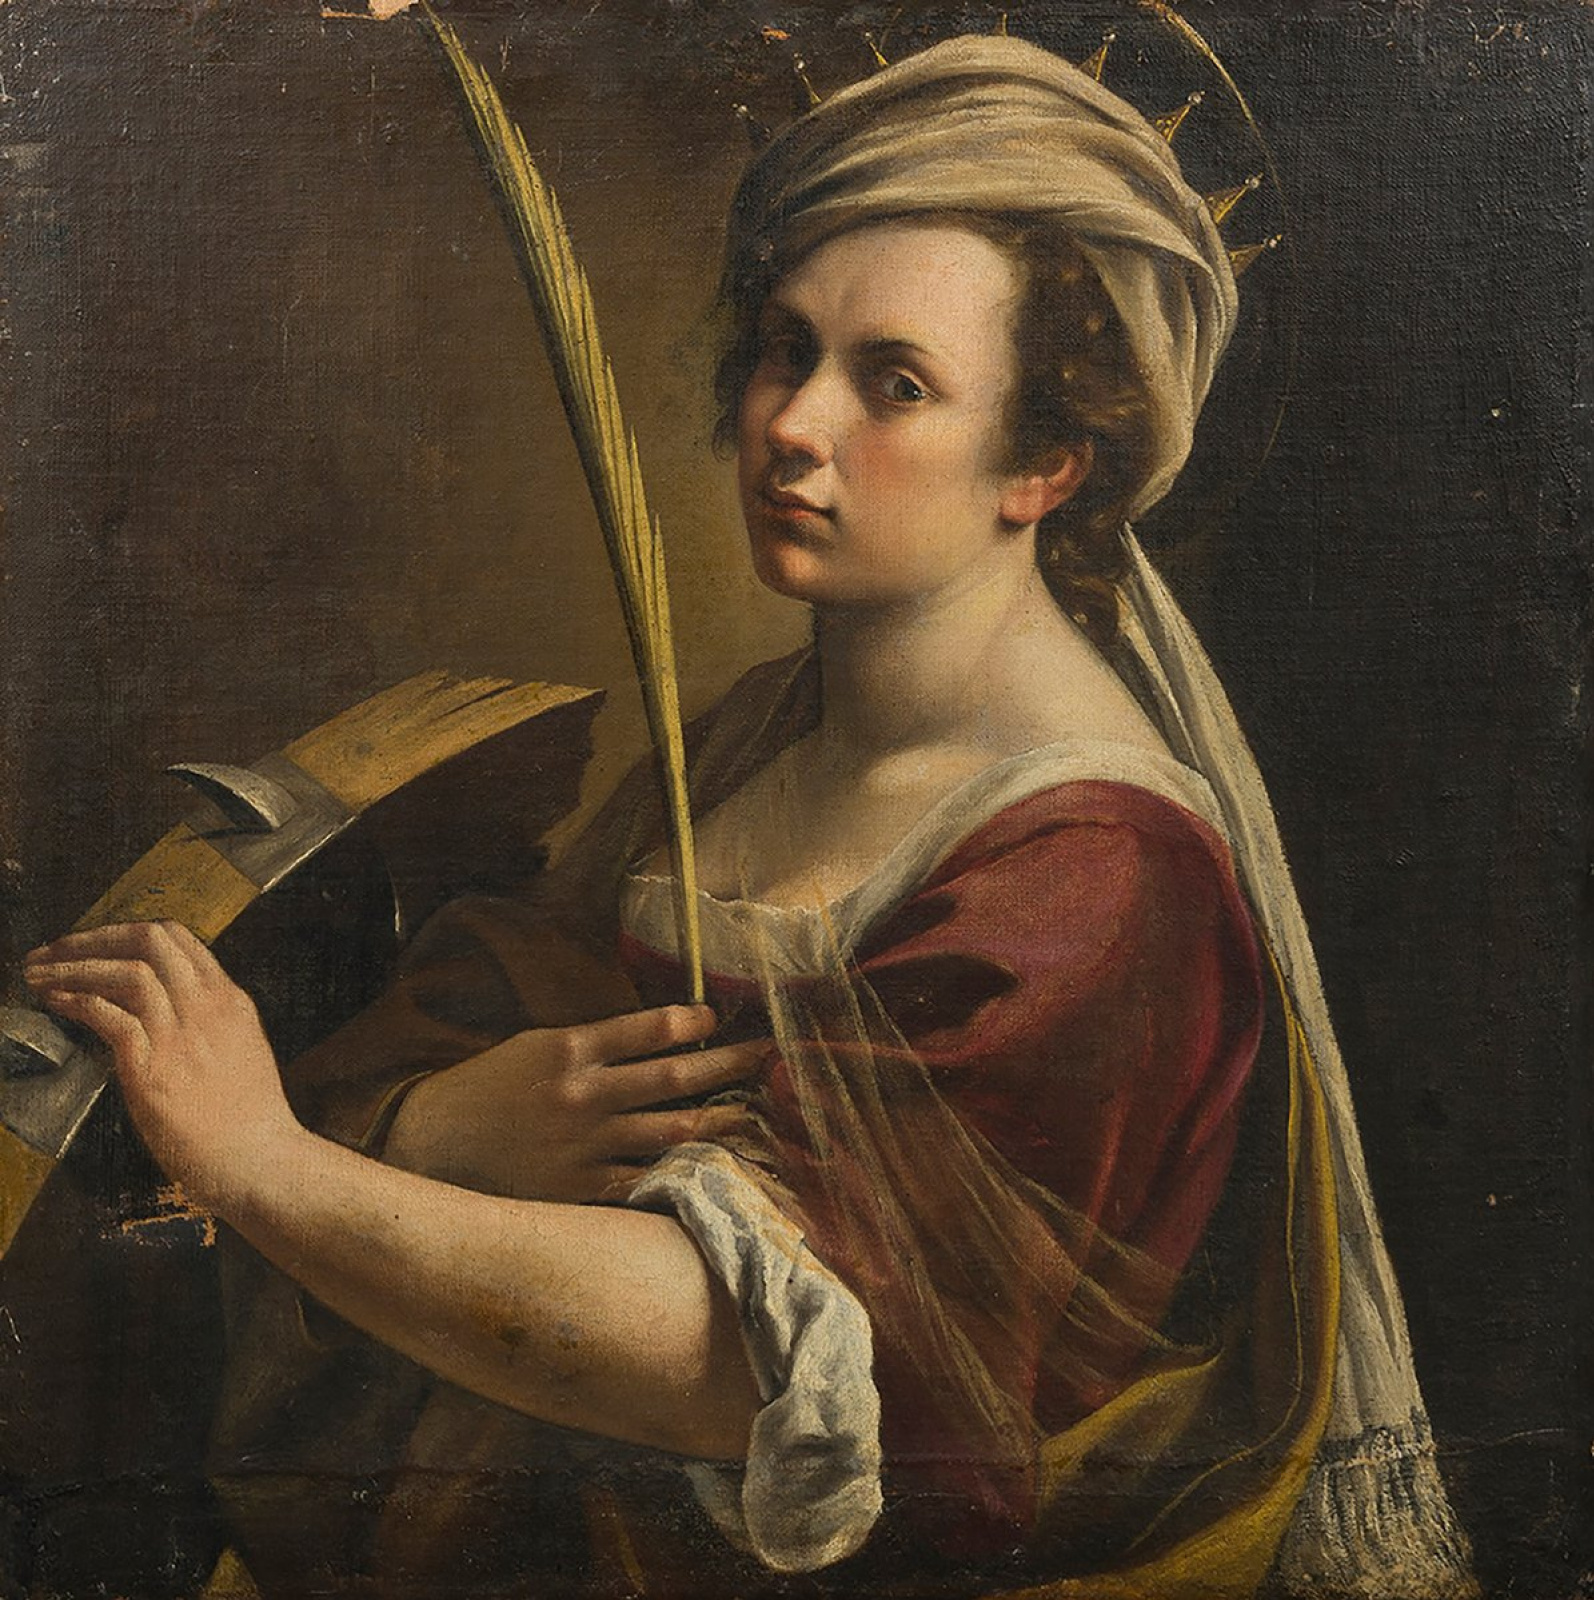 Artemisia Gentileschi. Self-portrait as Saint Catherine